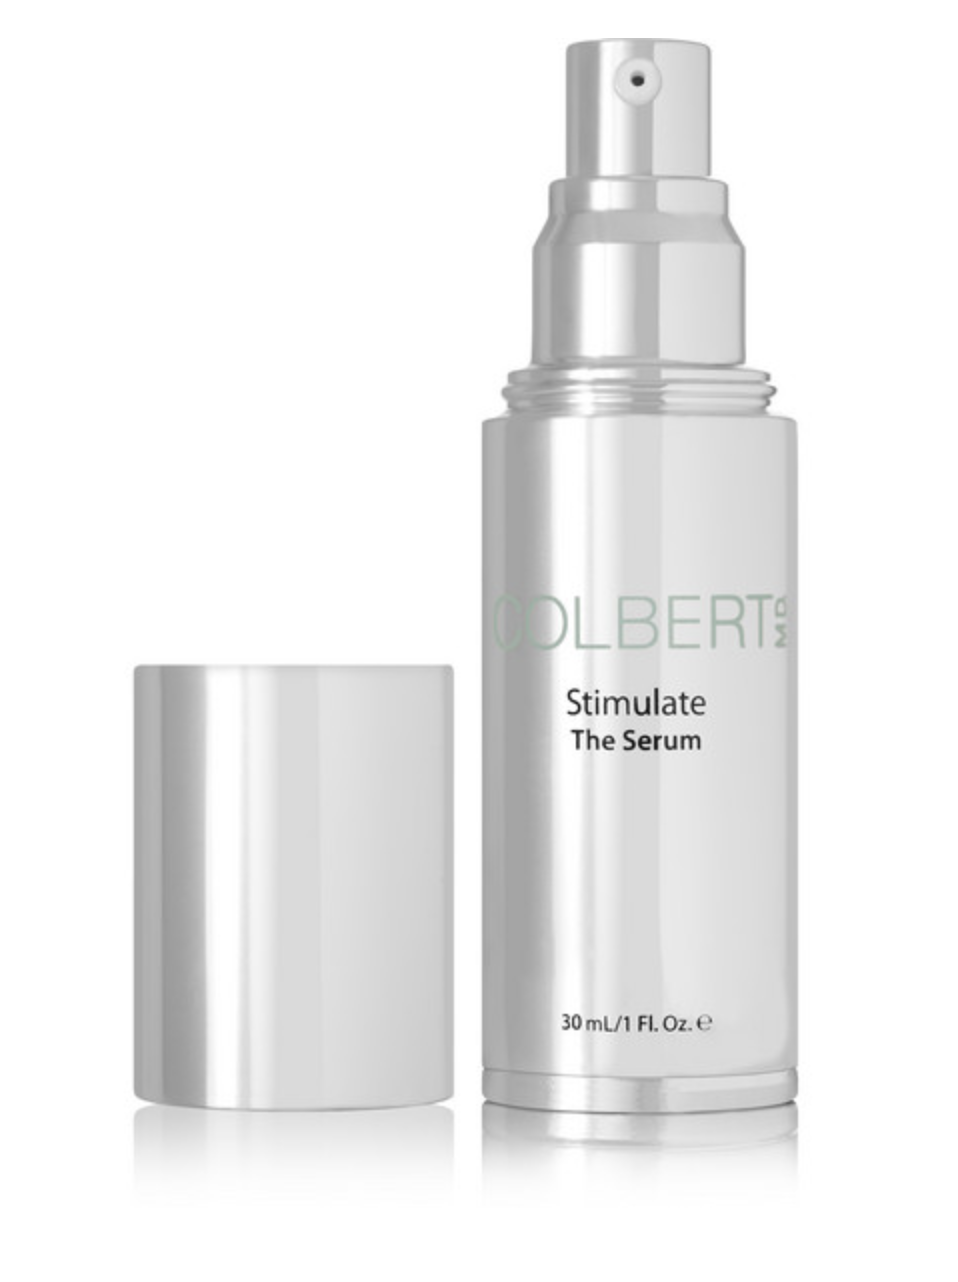 Colbert MD Stimulate Serum, Available at ColbertMD